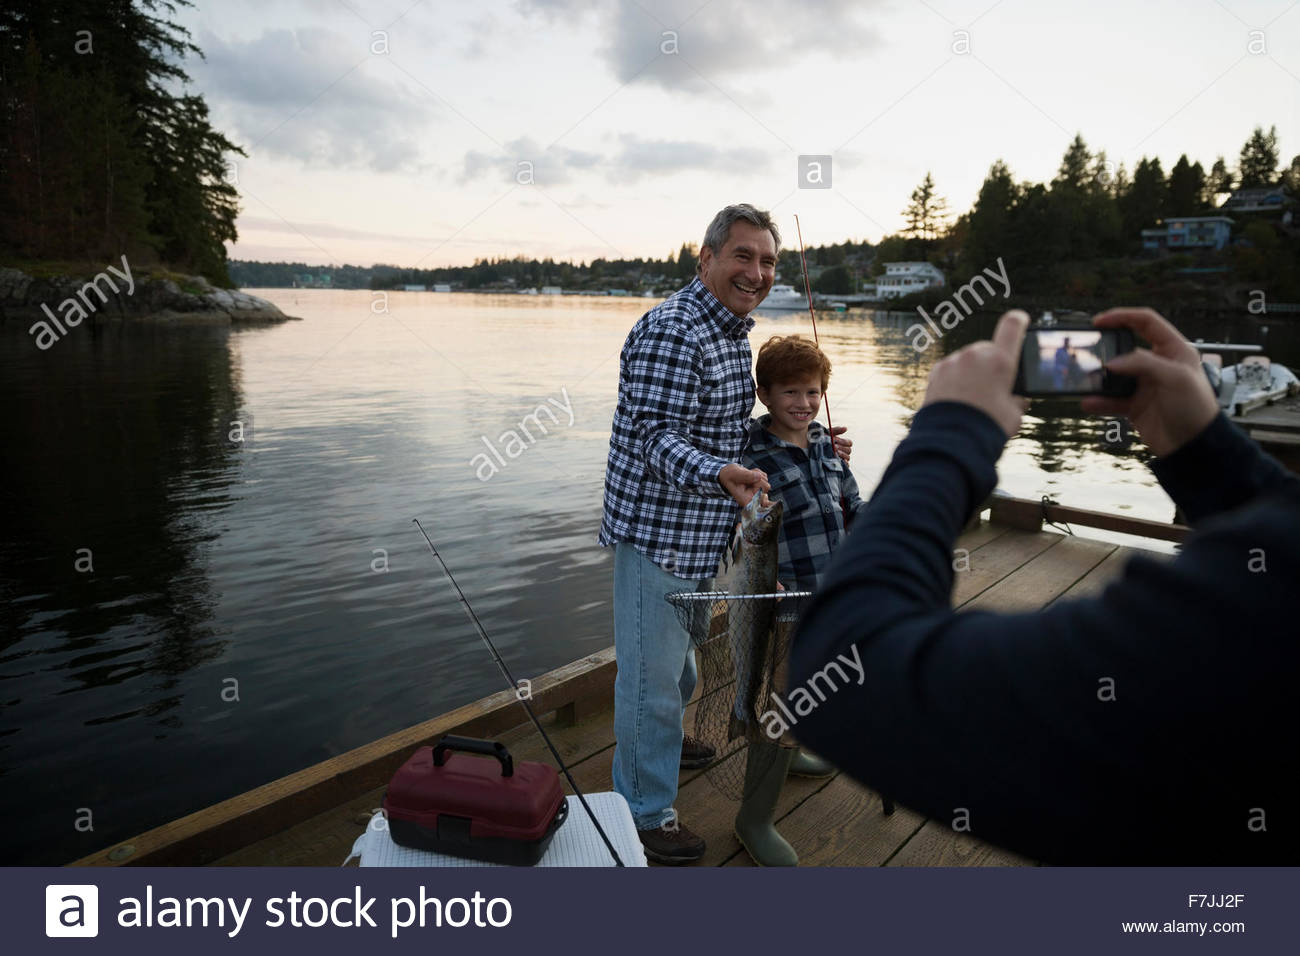 Grandfather and grandson posing caught fish lake dock - Stock Image